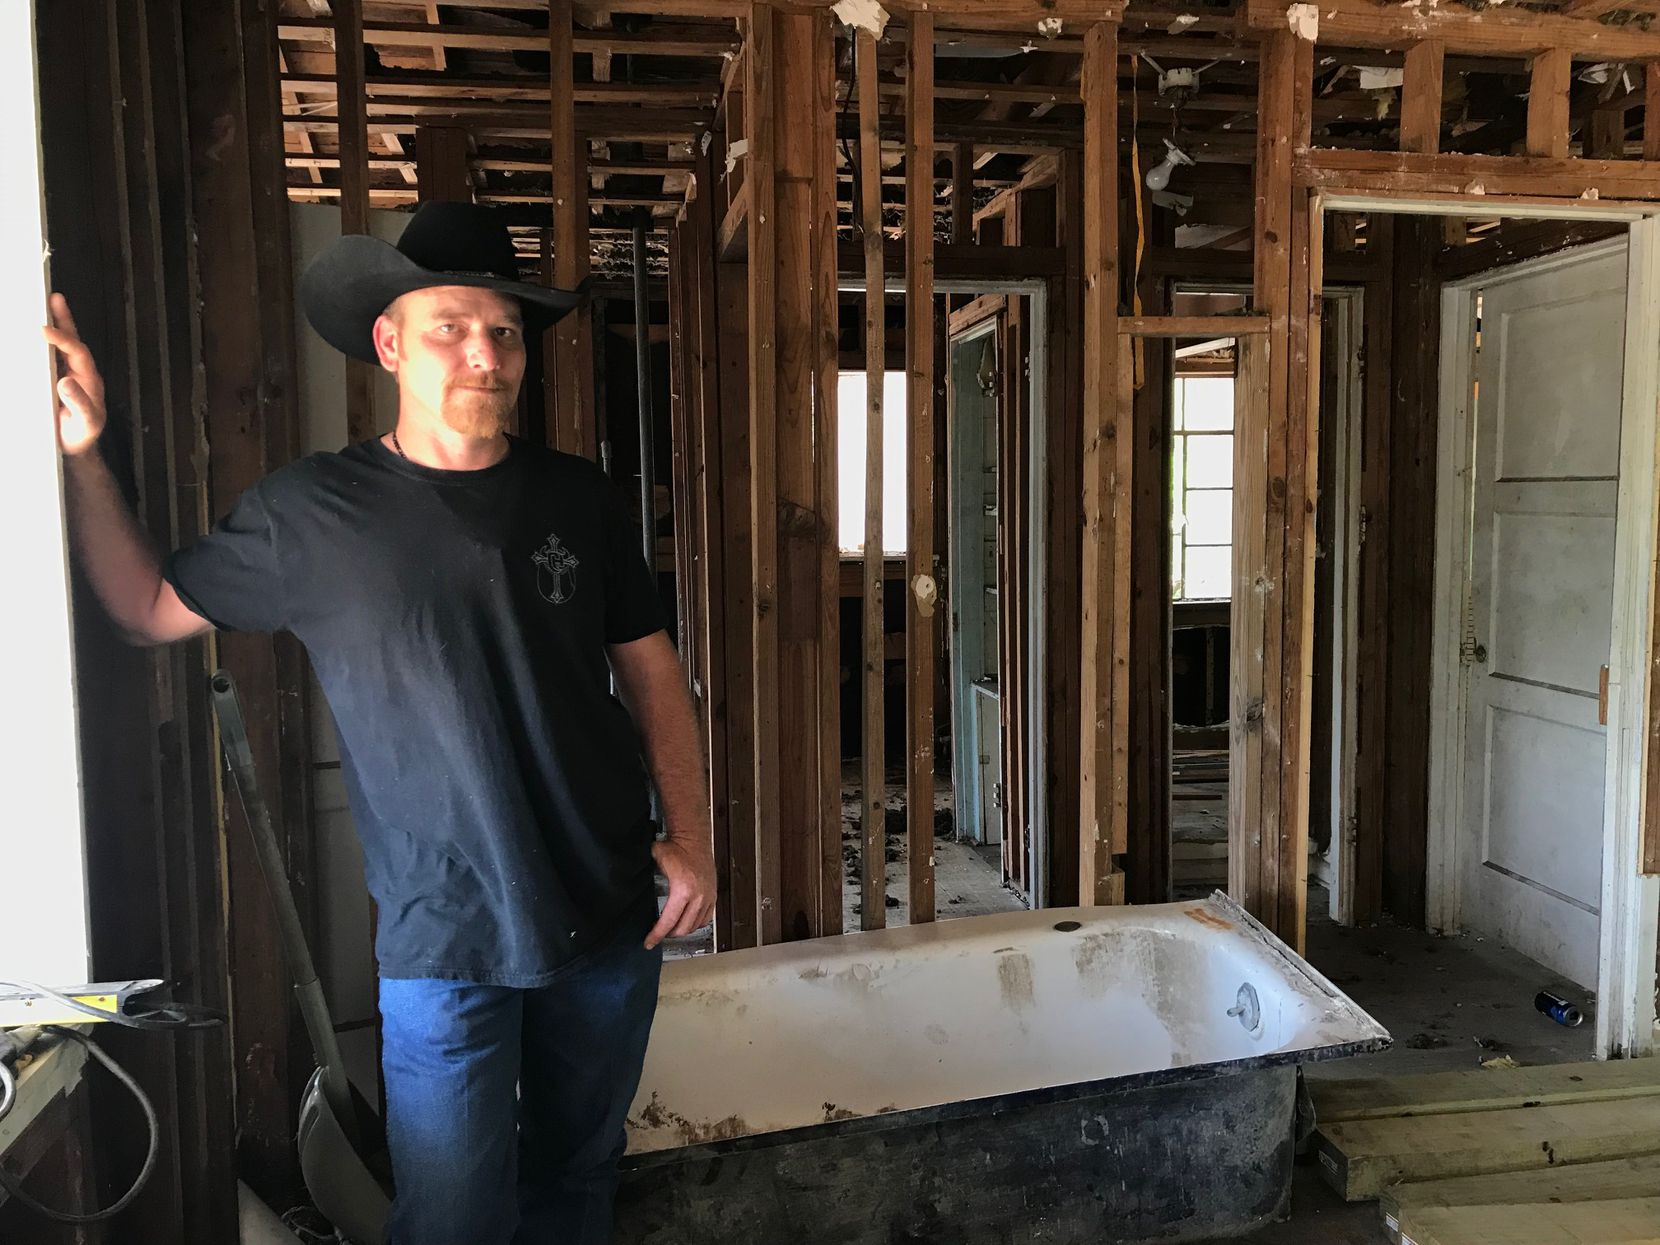 Chris Ward, 33, pictured at the family home he and his brother are remodeling in La Vernia, Texas, on April 2, 2018. Ward lost his wife and two daughters in the shooting at the First Baptist Church of Sutherland Springs.(Lauren McGaughy/Staff)